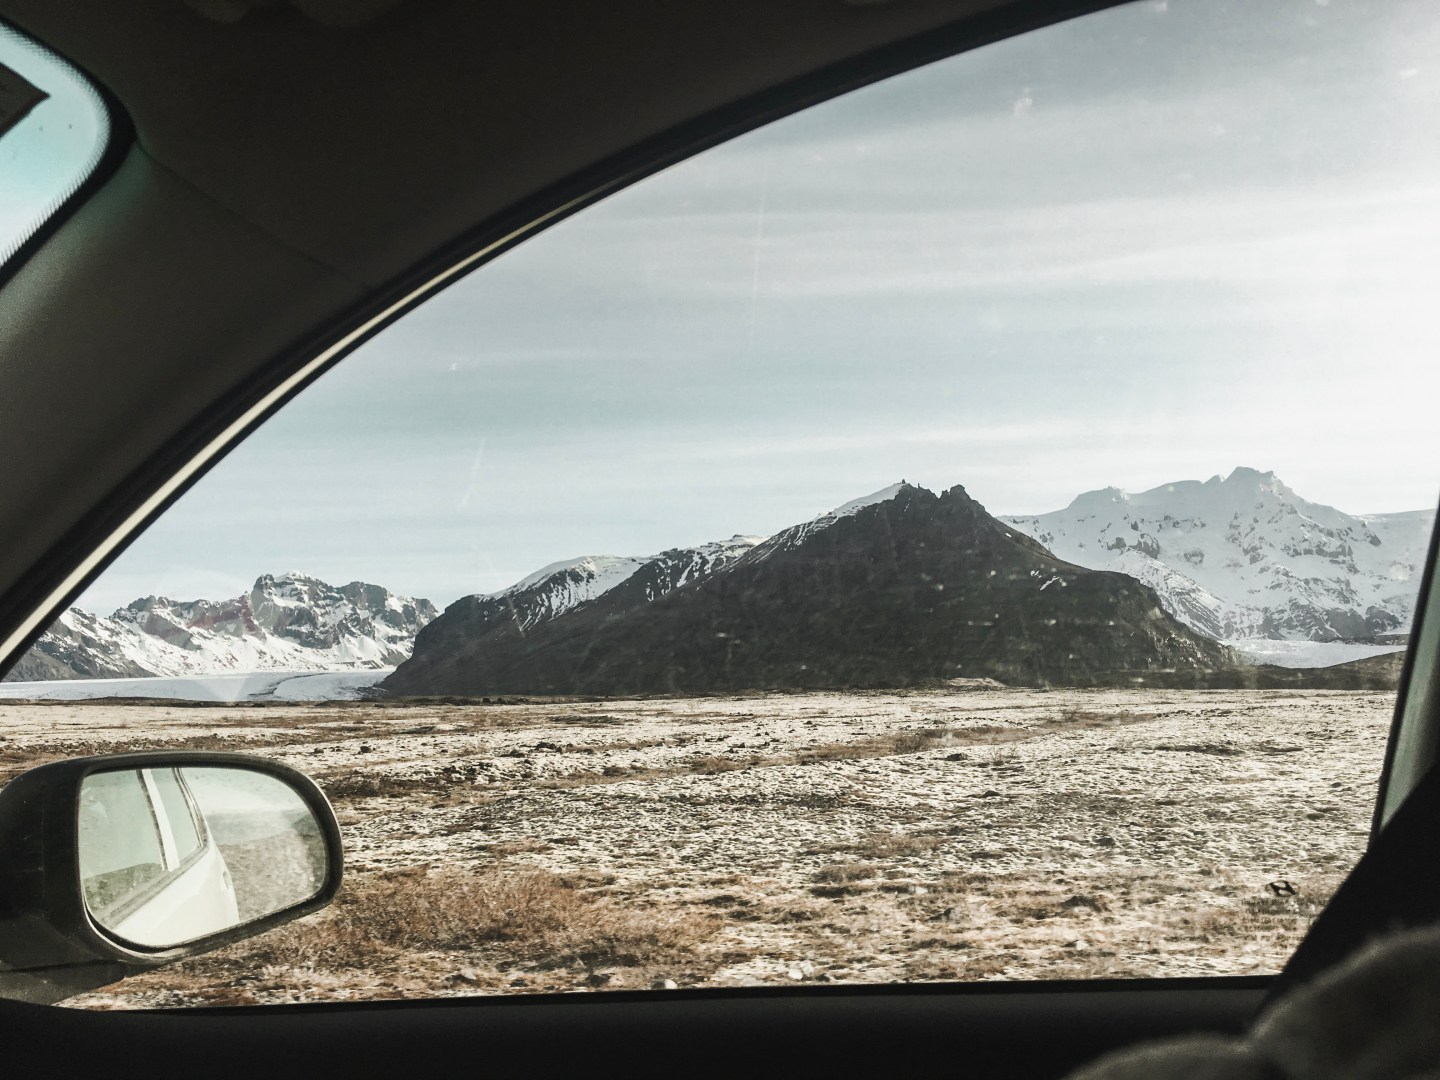 Illustrated by Sade - View from the car window while driving through Iceland.